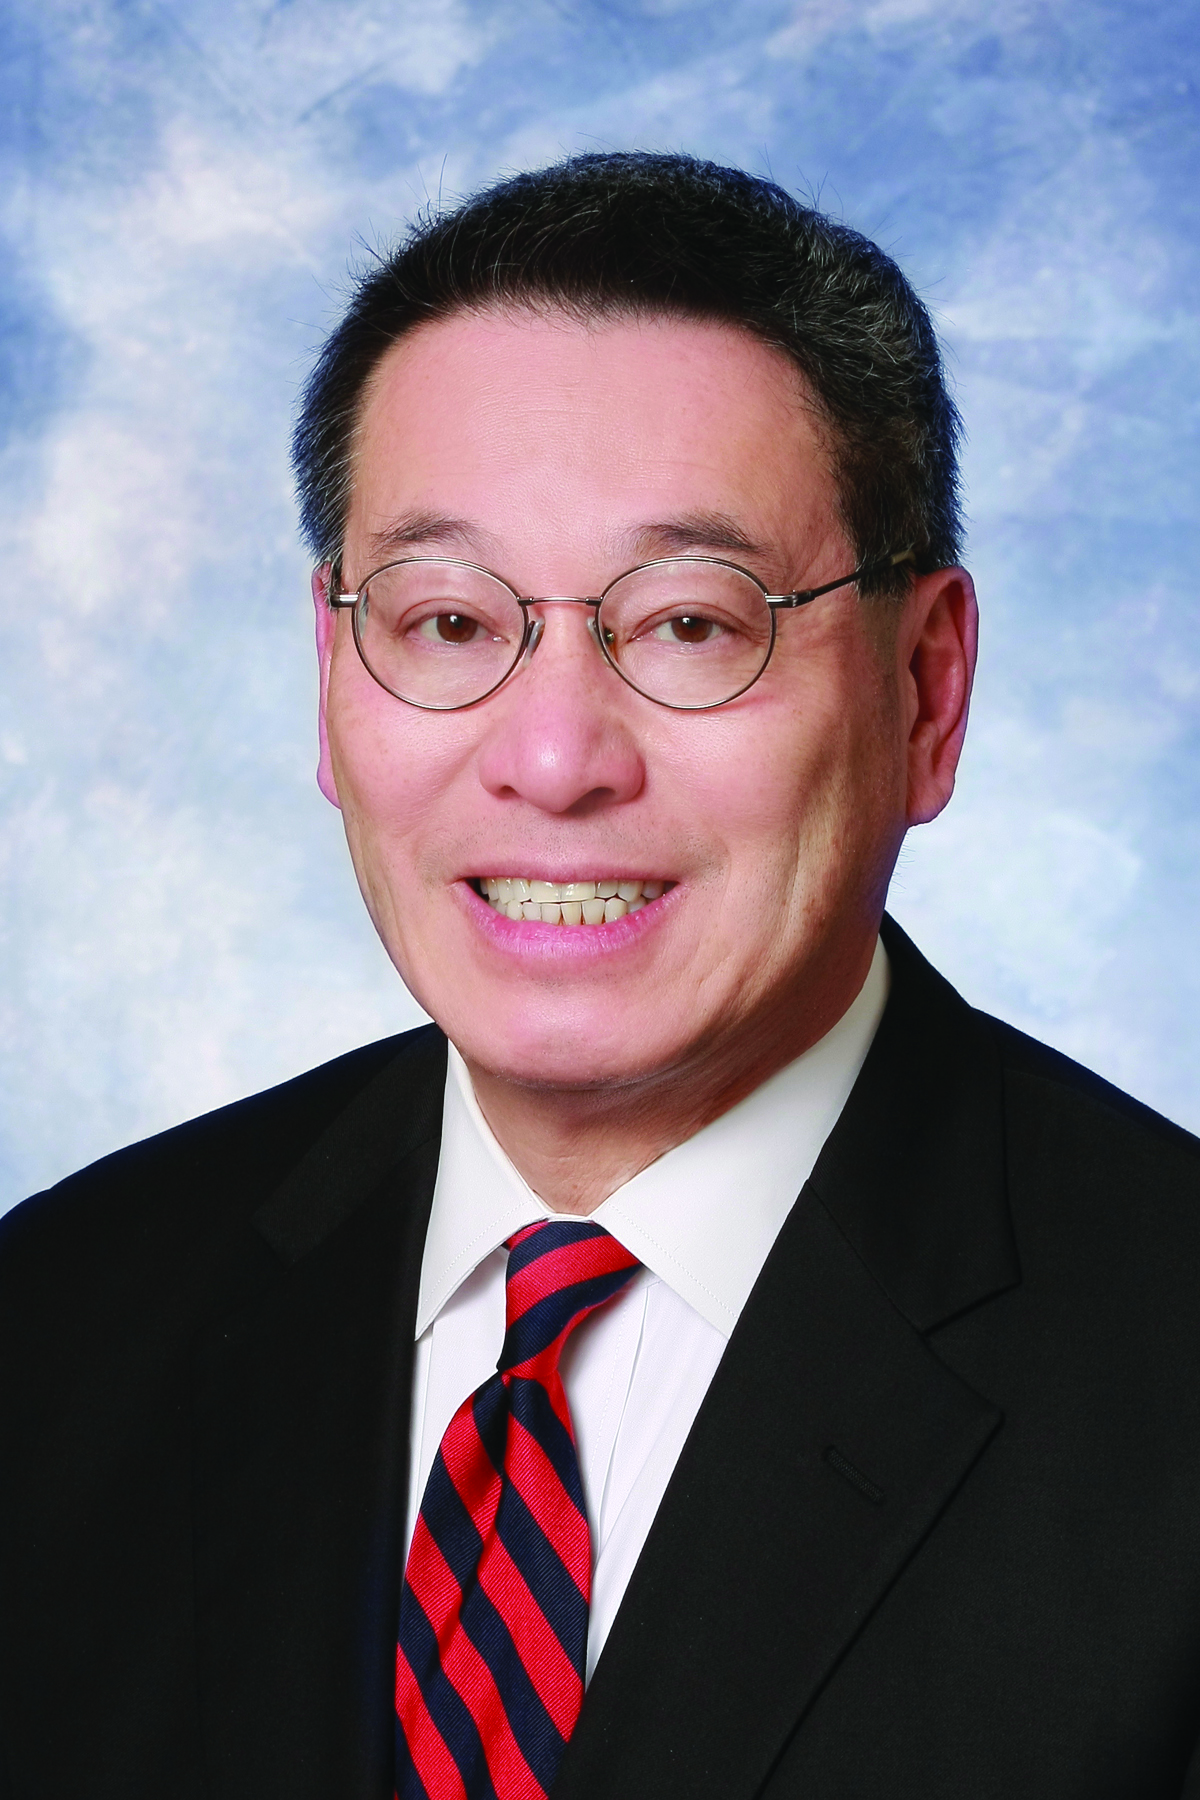 Dr. Richard L. Wing